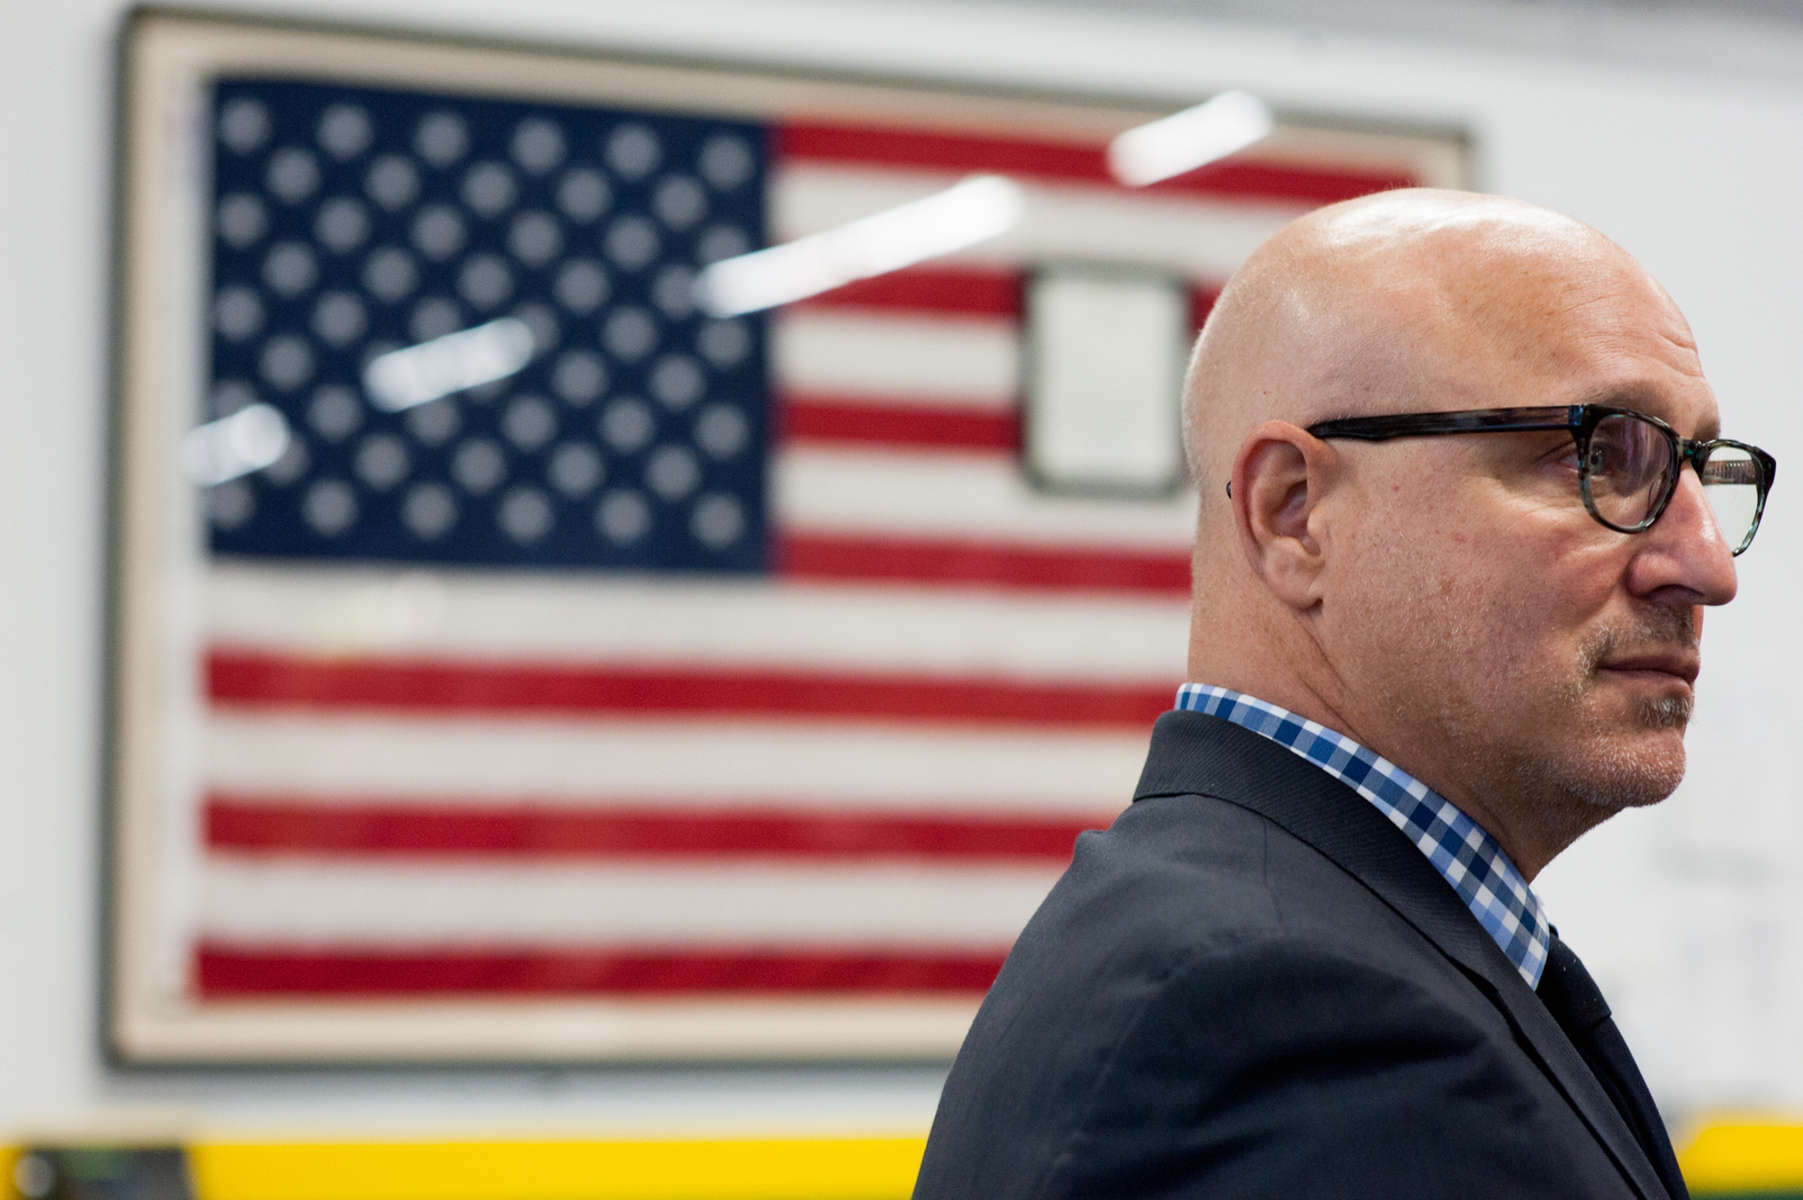 Chef Tom Colicchio, a native of New Jersey, partakes in a public event at the Community Food Bank of New Jersey in Hillside to urge Governor Chris Christie to not make cuts to the SNAP program which helps feed the hungry. (May 13, 2014)Photo by Nancy Borowick